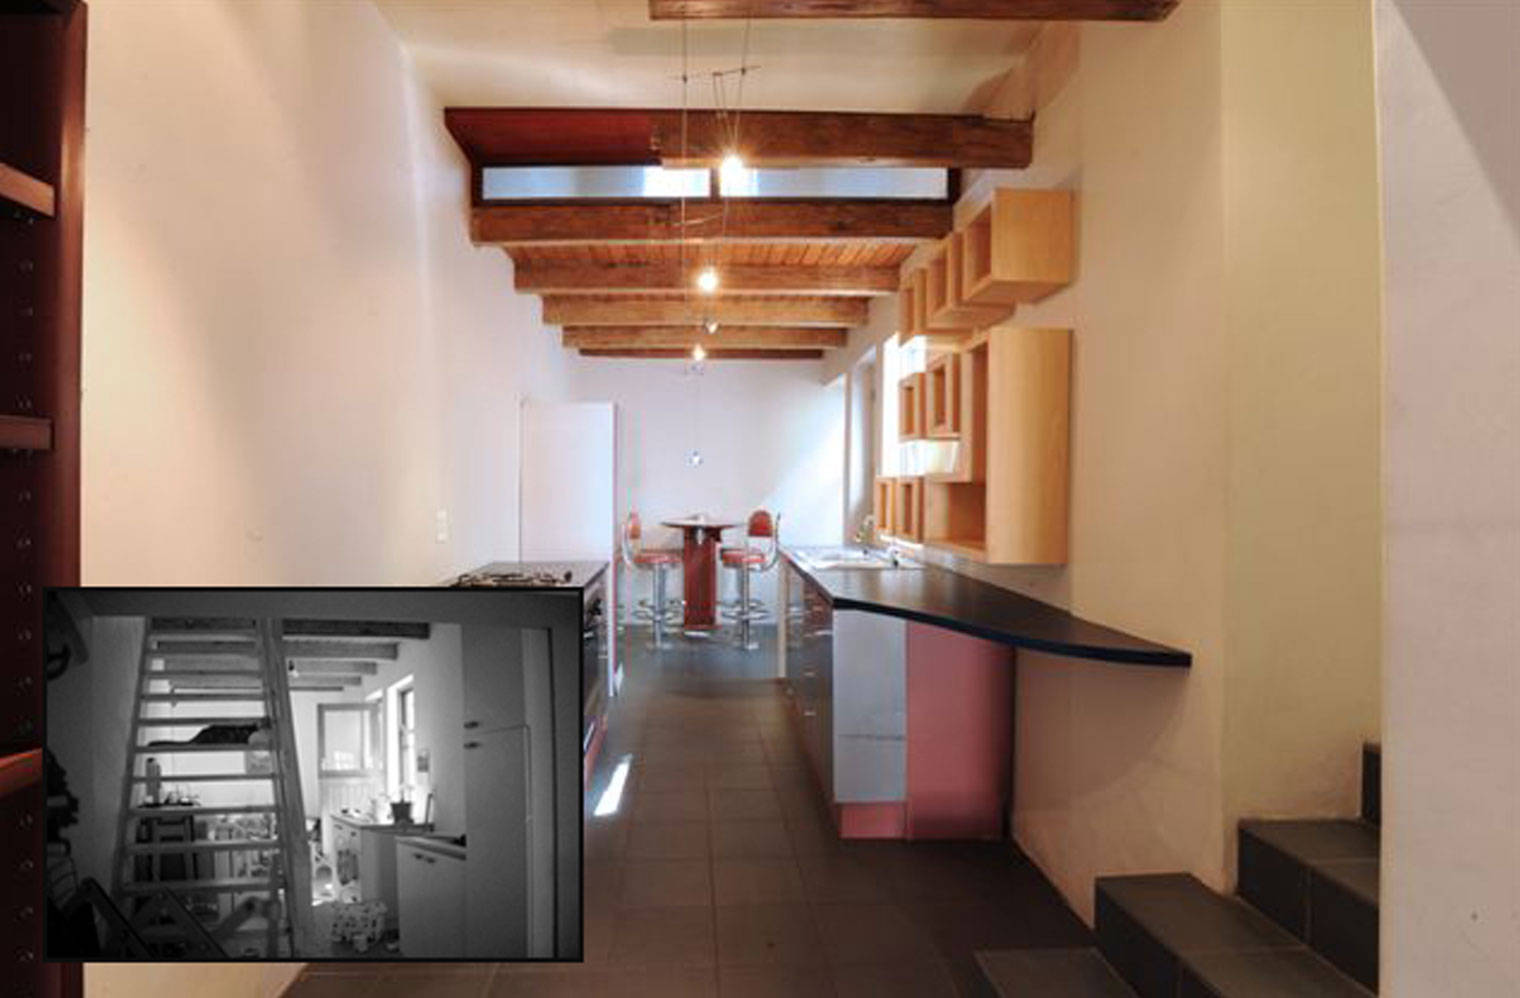 45 Leeuwen Street- 'before and after'